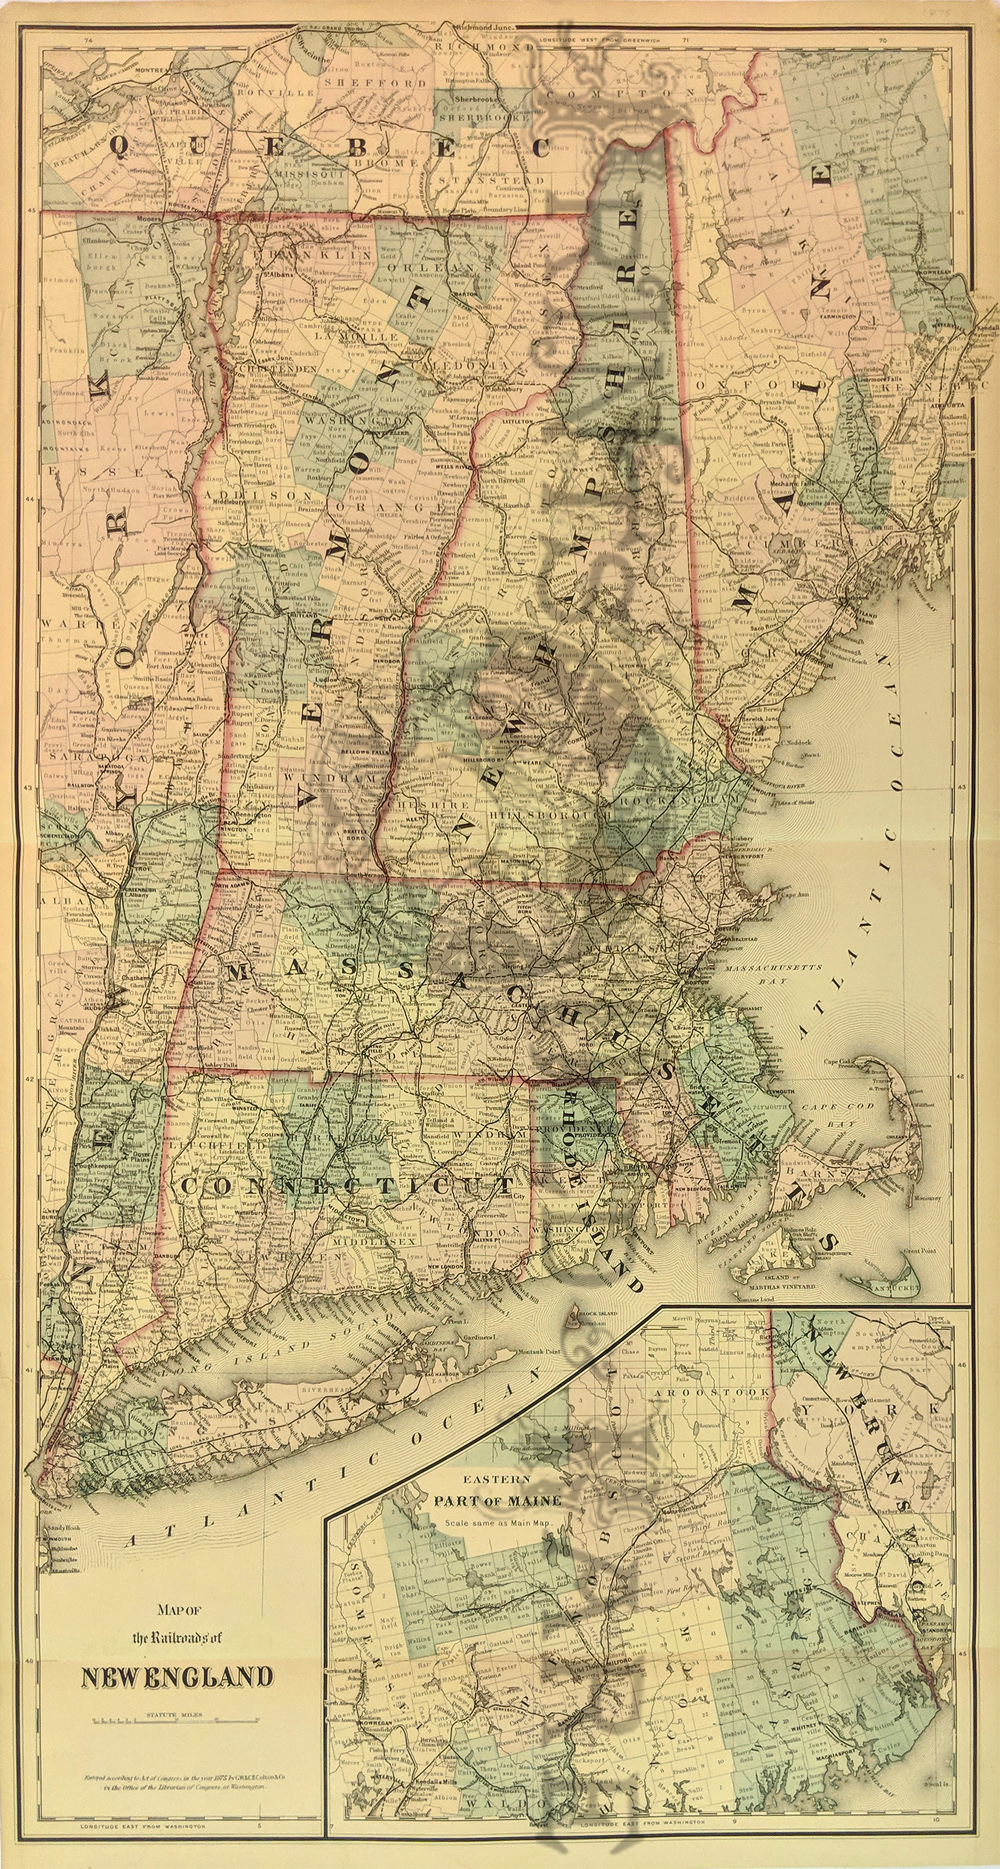 Old Maine Map.Prints Old Rare Maine Antique Maps Prints